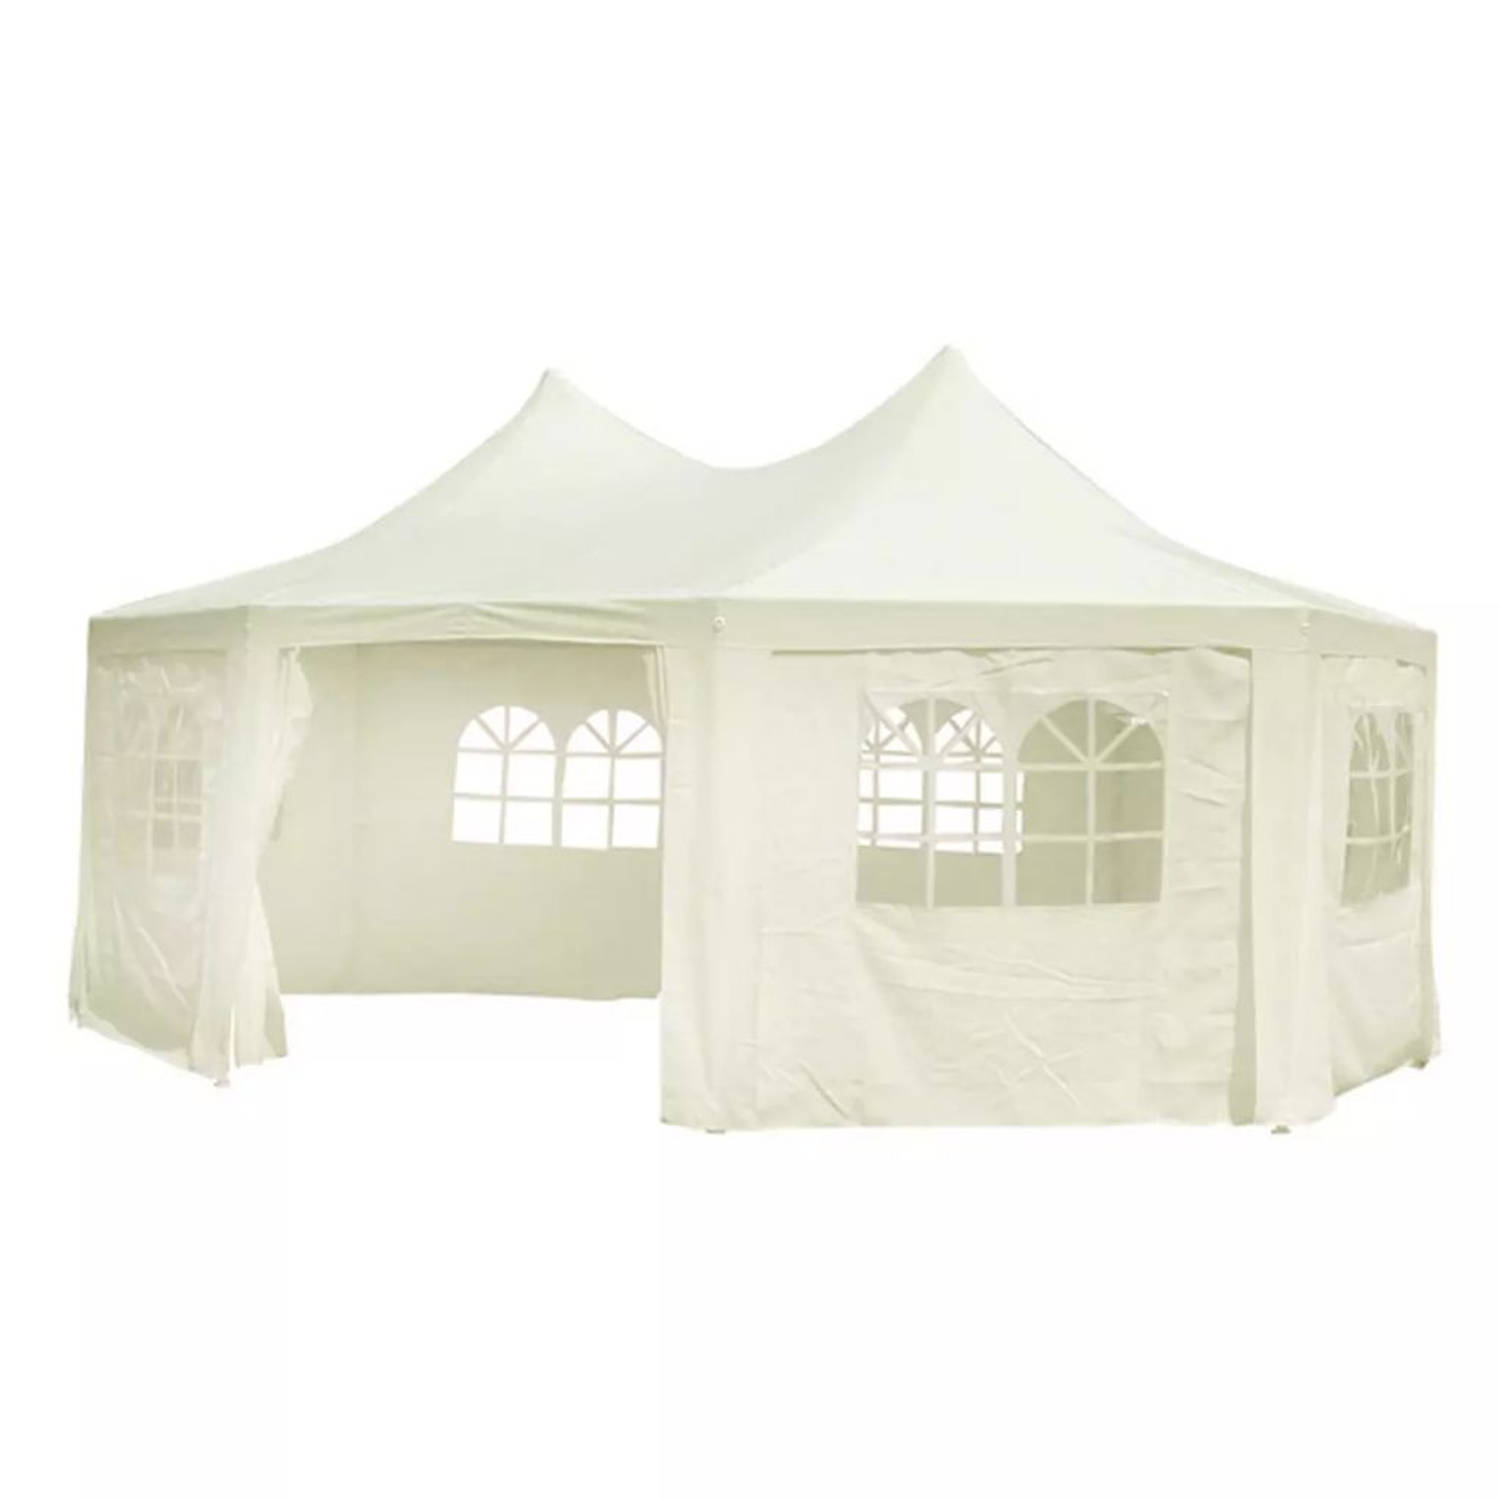 Partytent pagode 6 x 4.4 PE cr